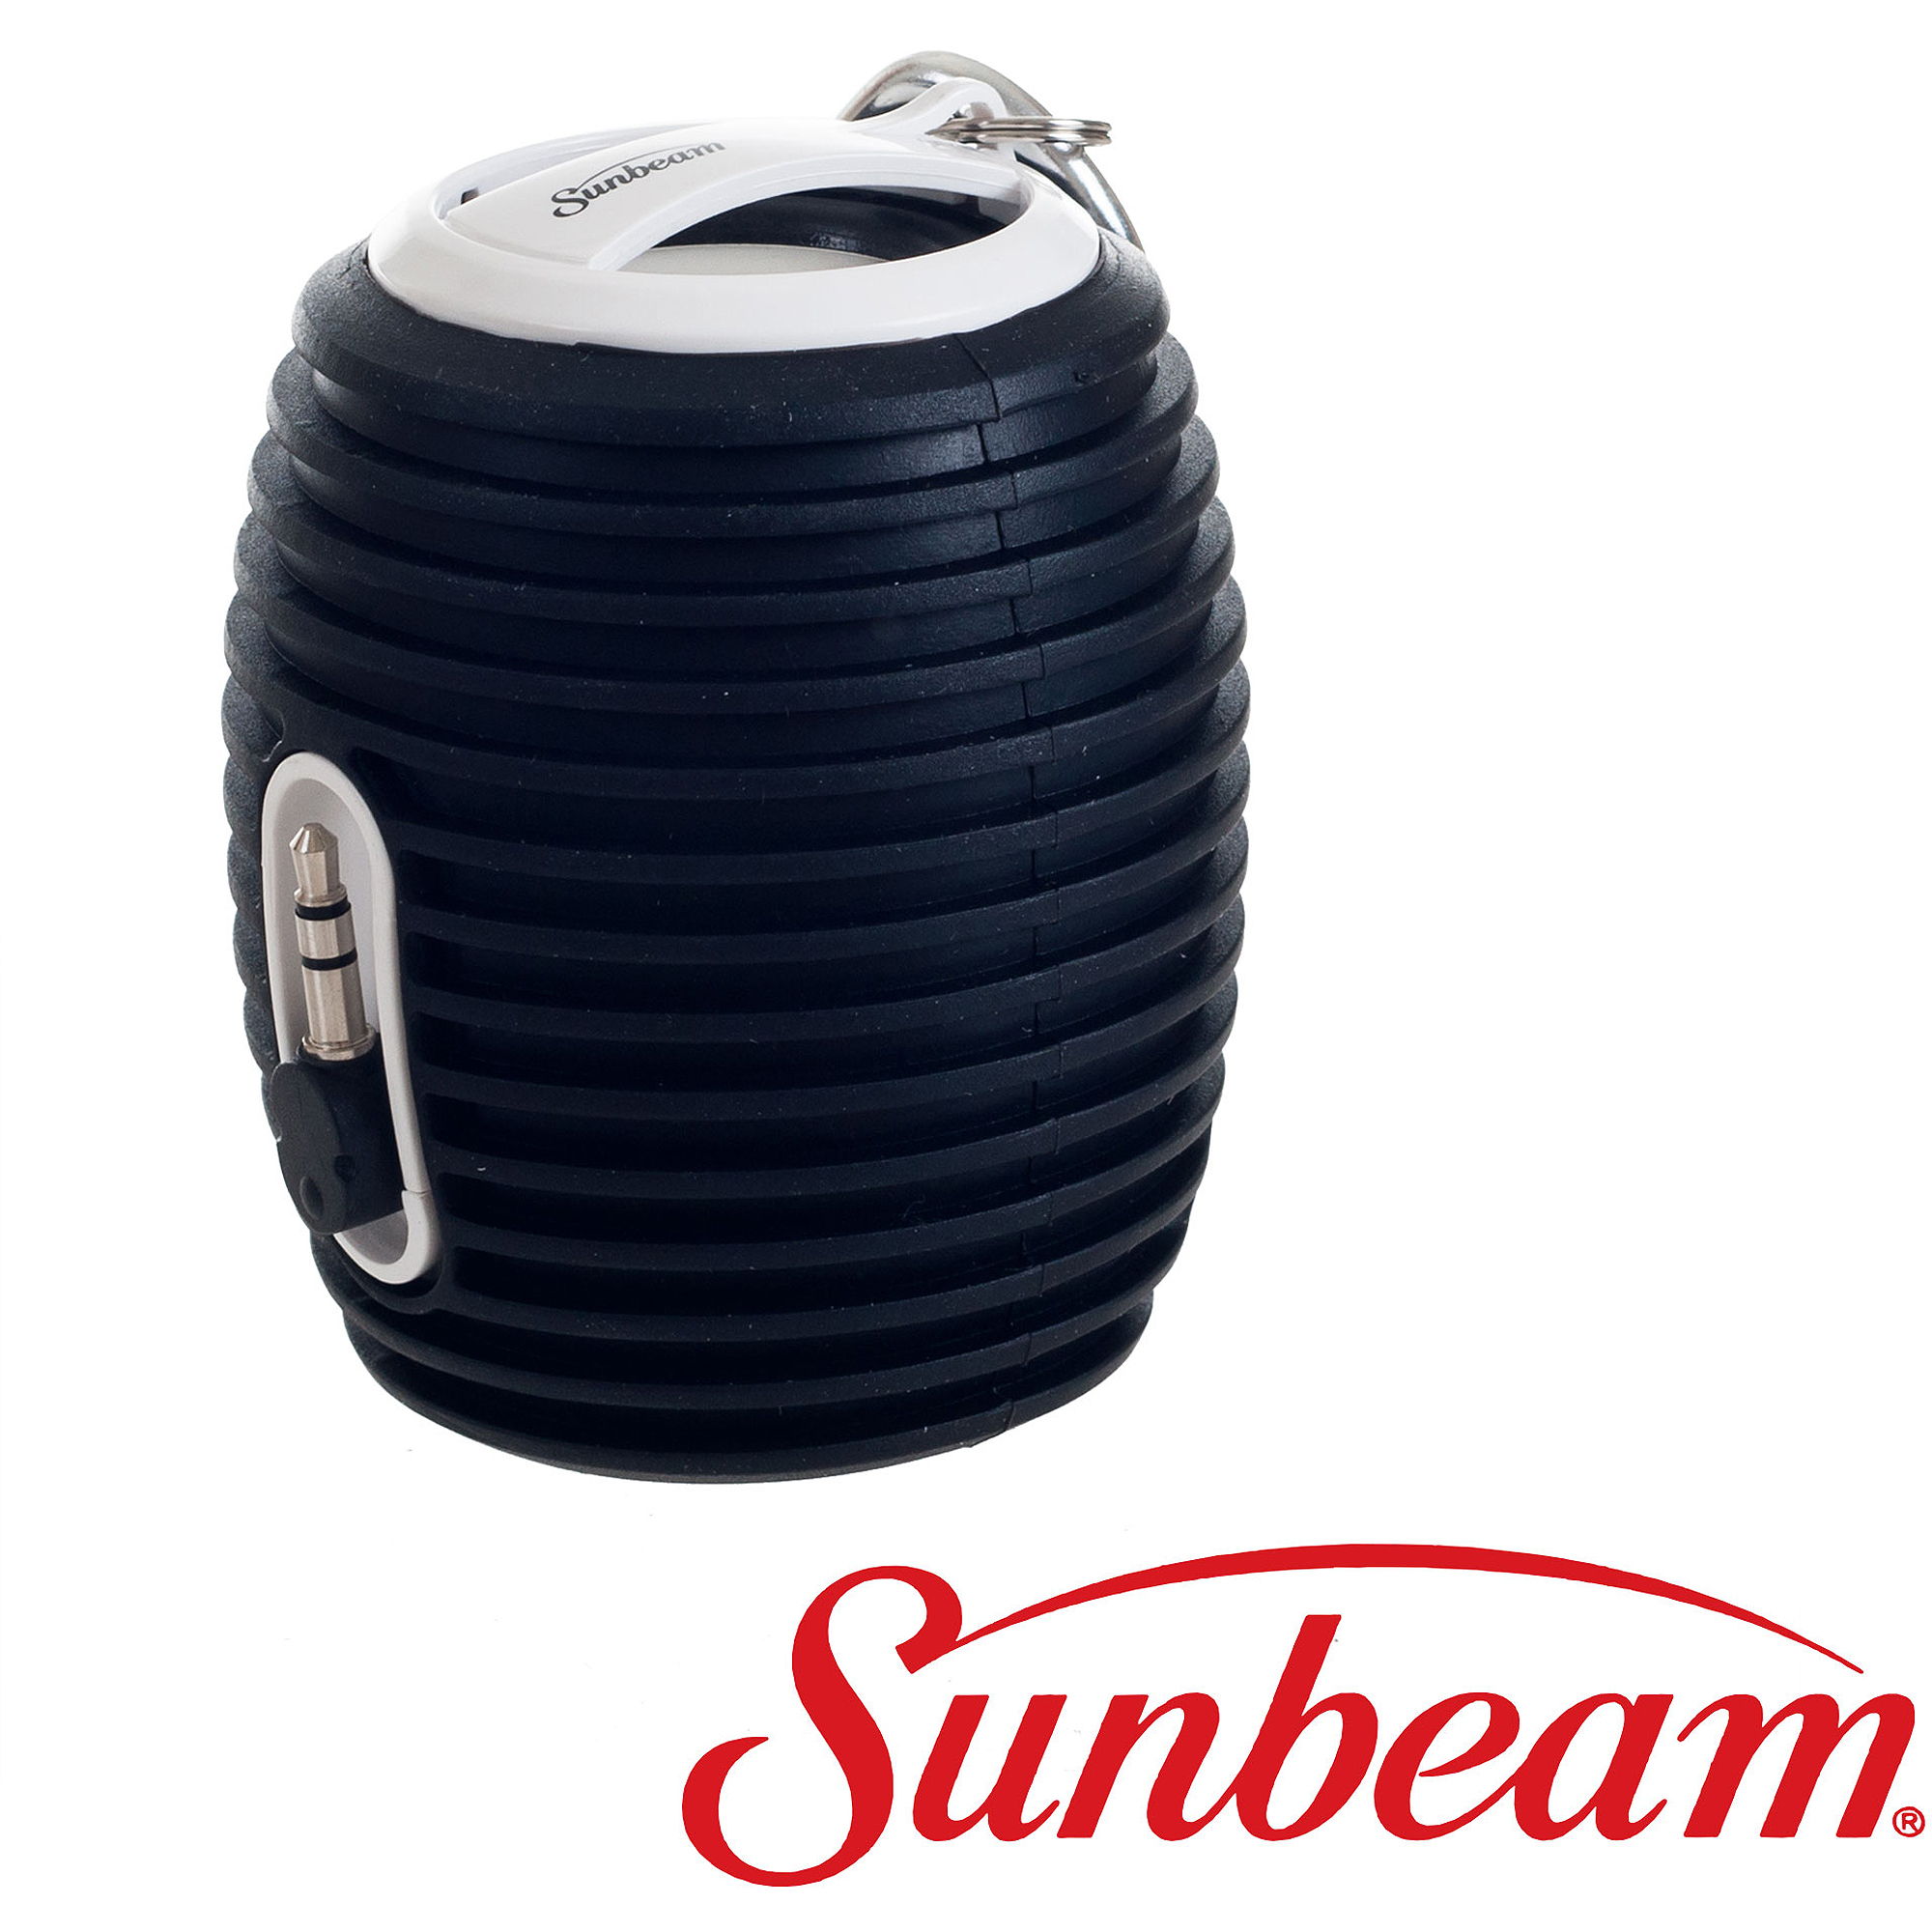 Sunbeam Rechargeable Portable Speaker with Cable